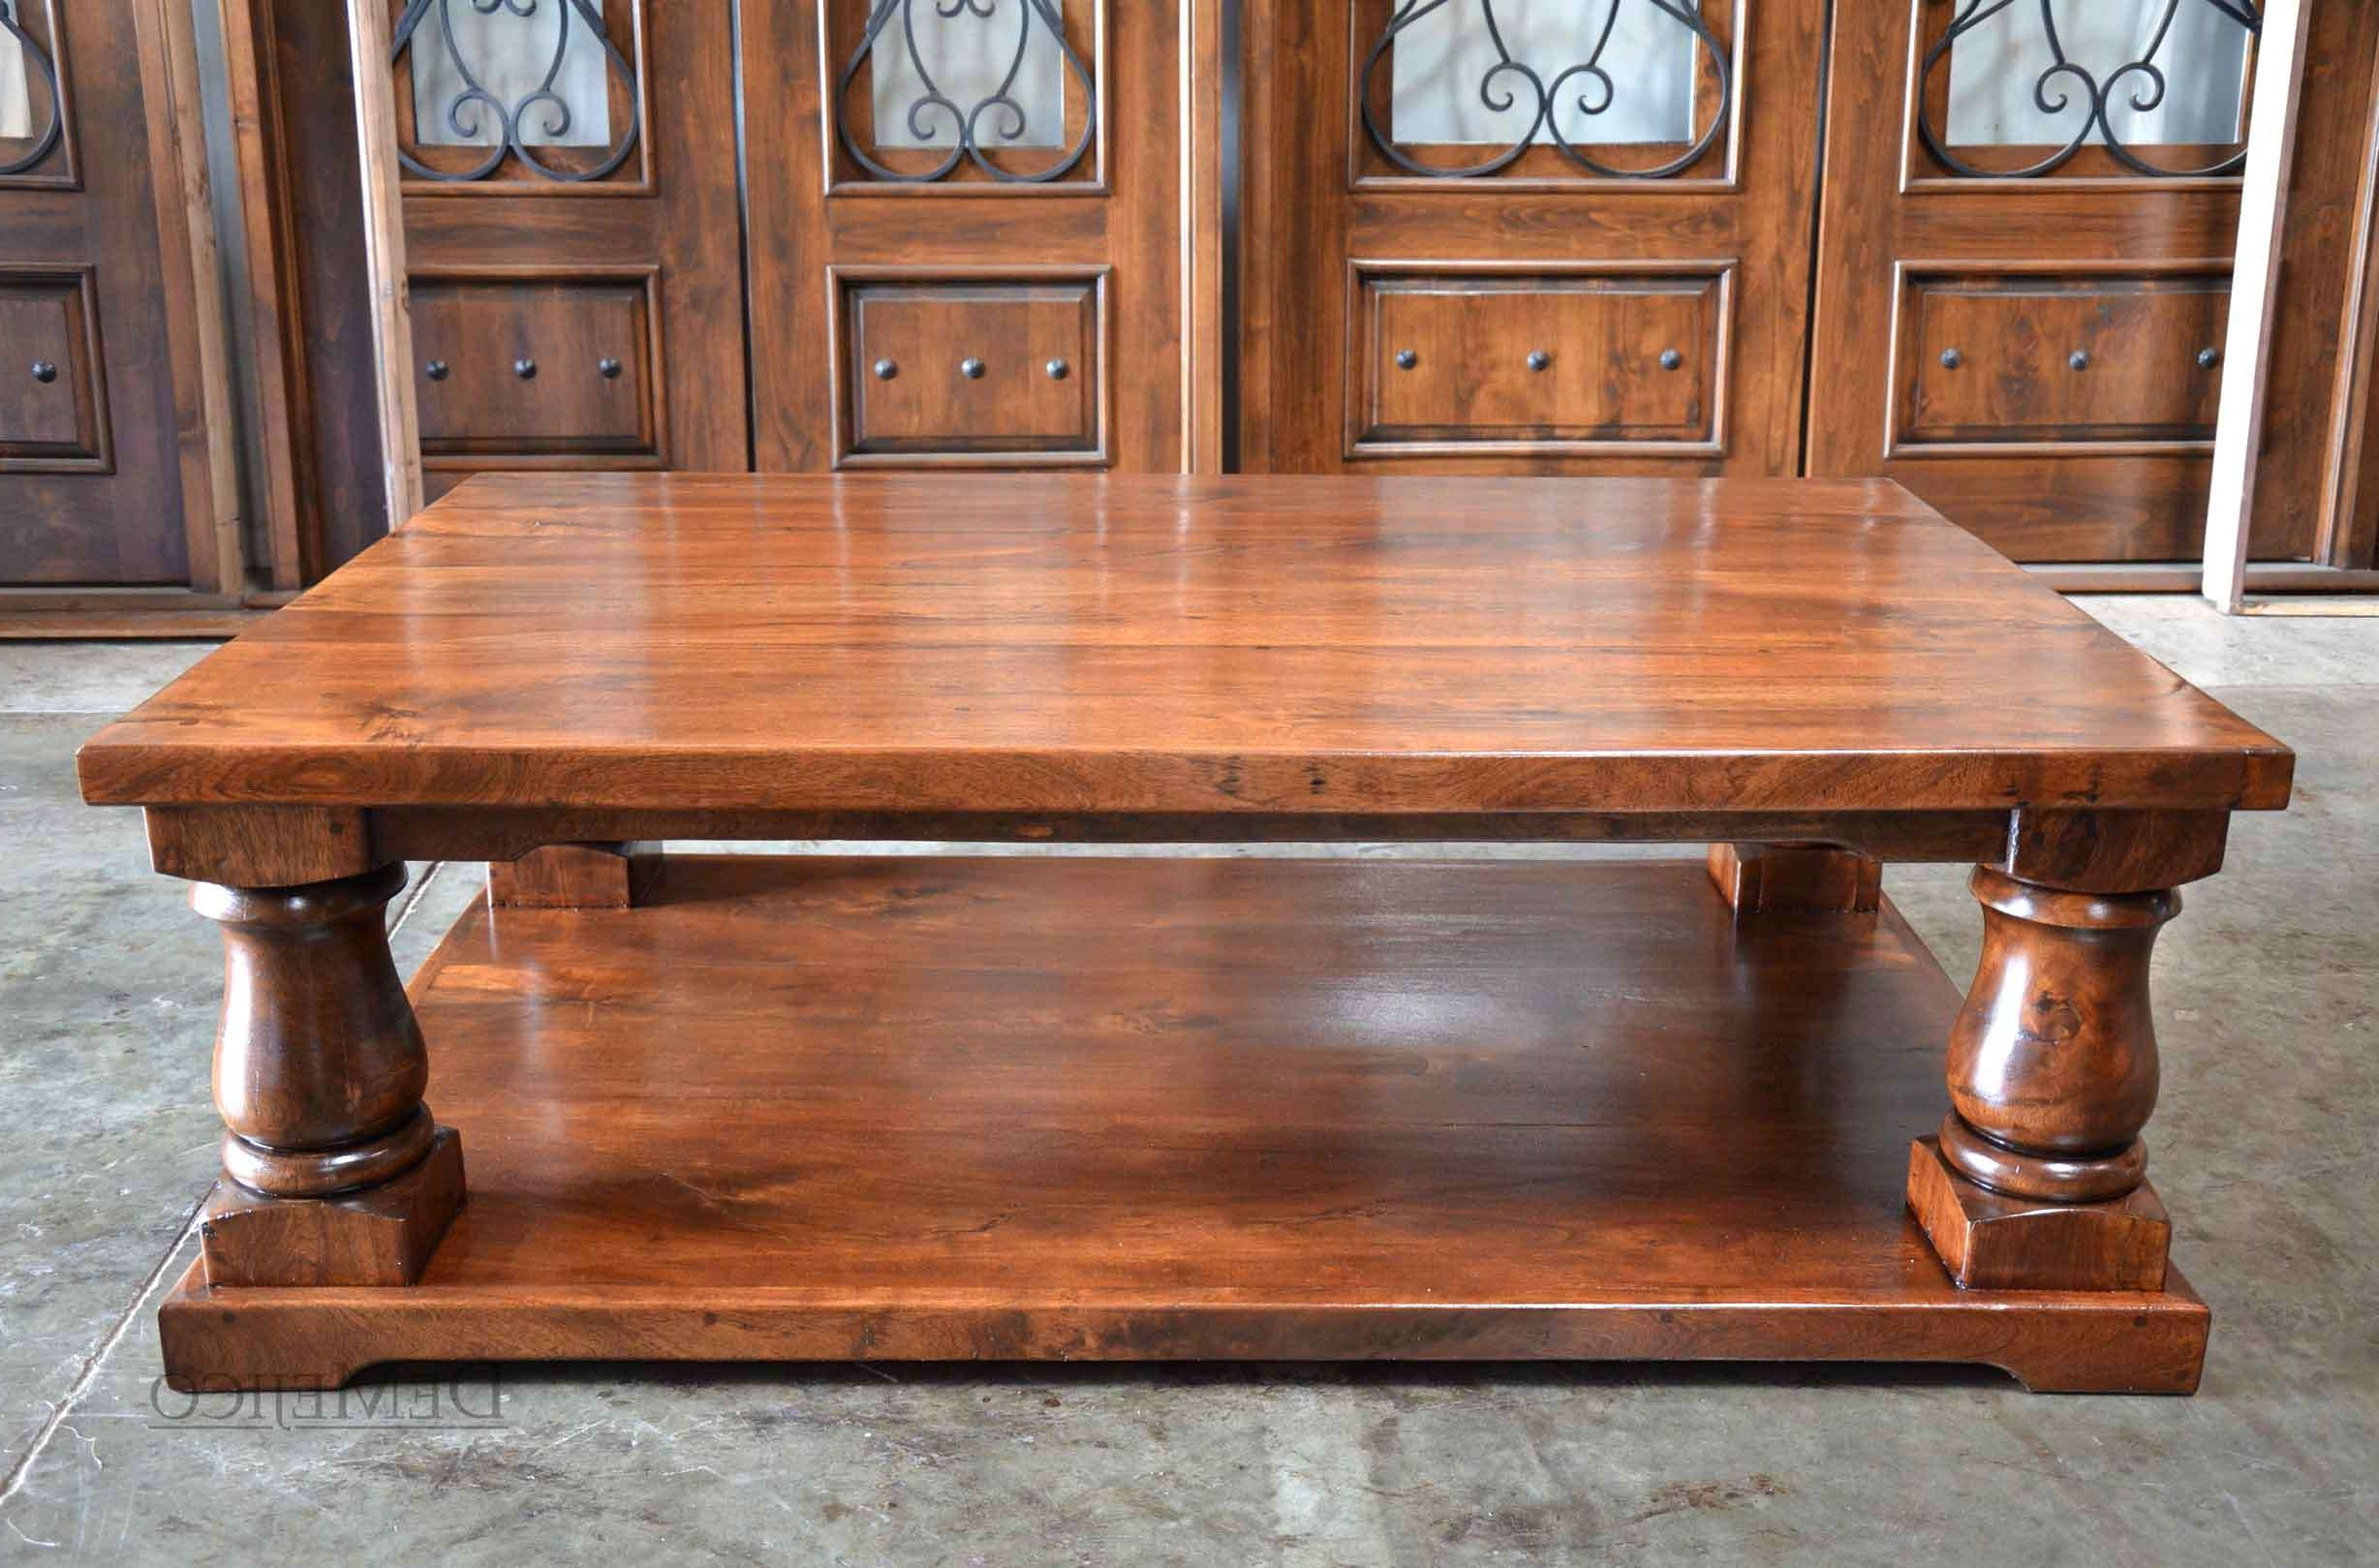 Large Rustic Coffee Table In Latest Large Rustic Coffee Tables (View 9 of 20)